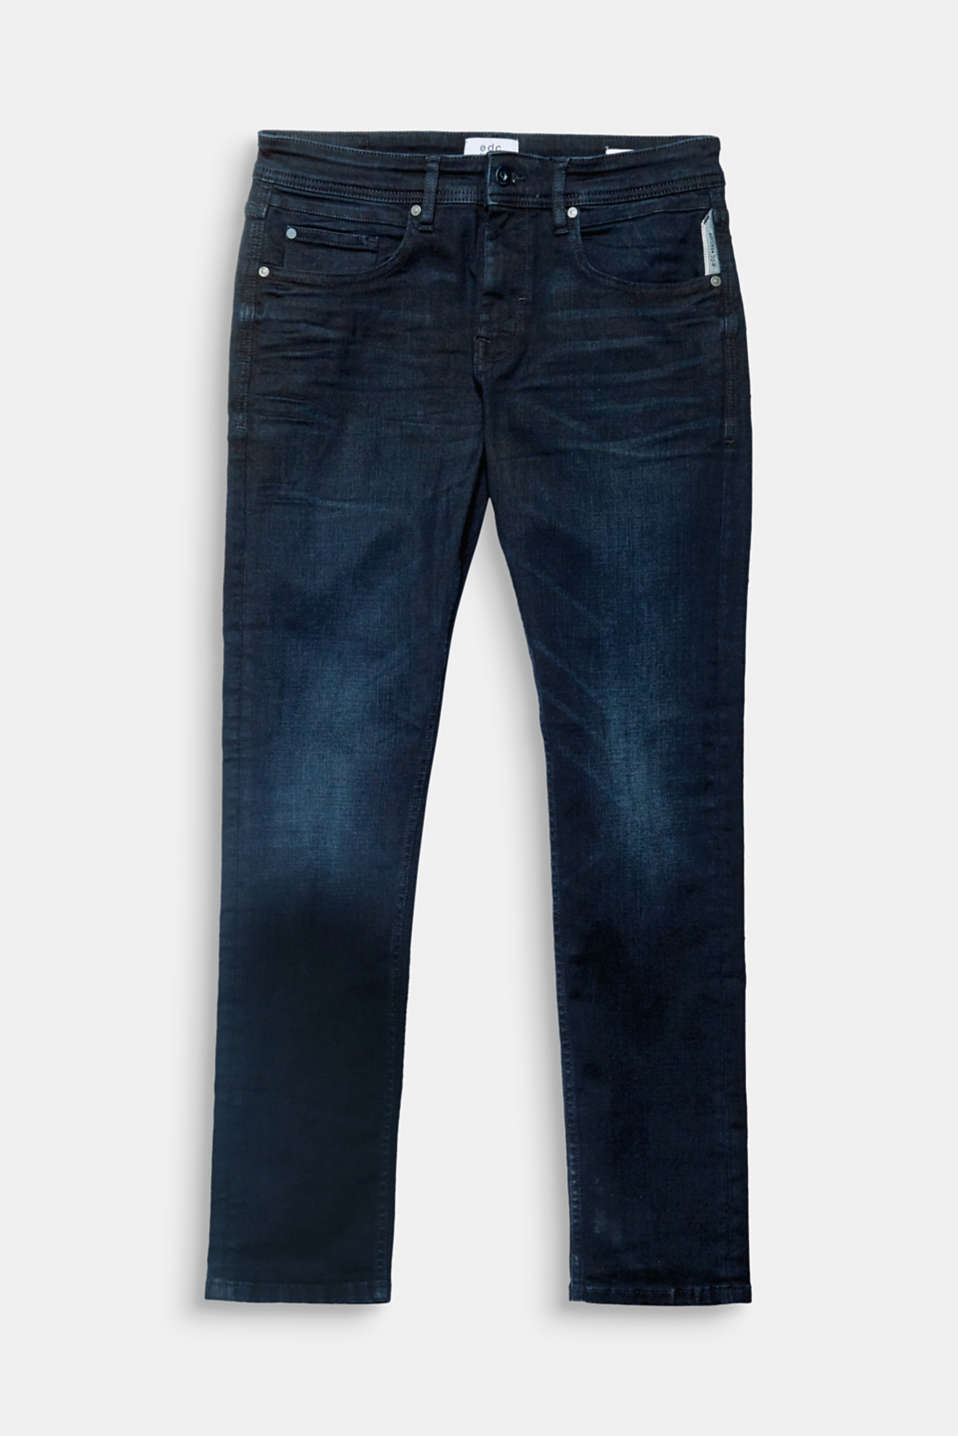 Definitive denim: stretch jeans in a dark wash with a subtle faded finish.